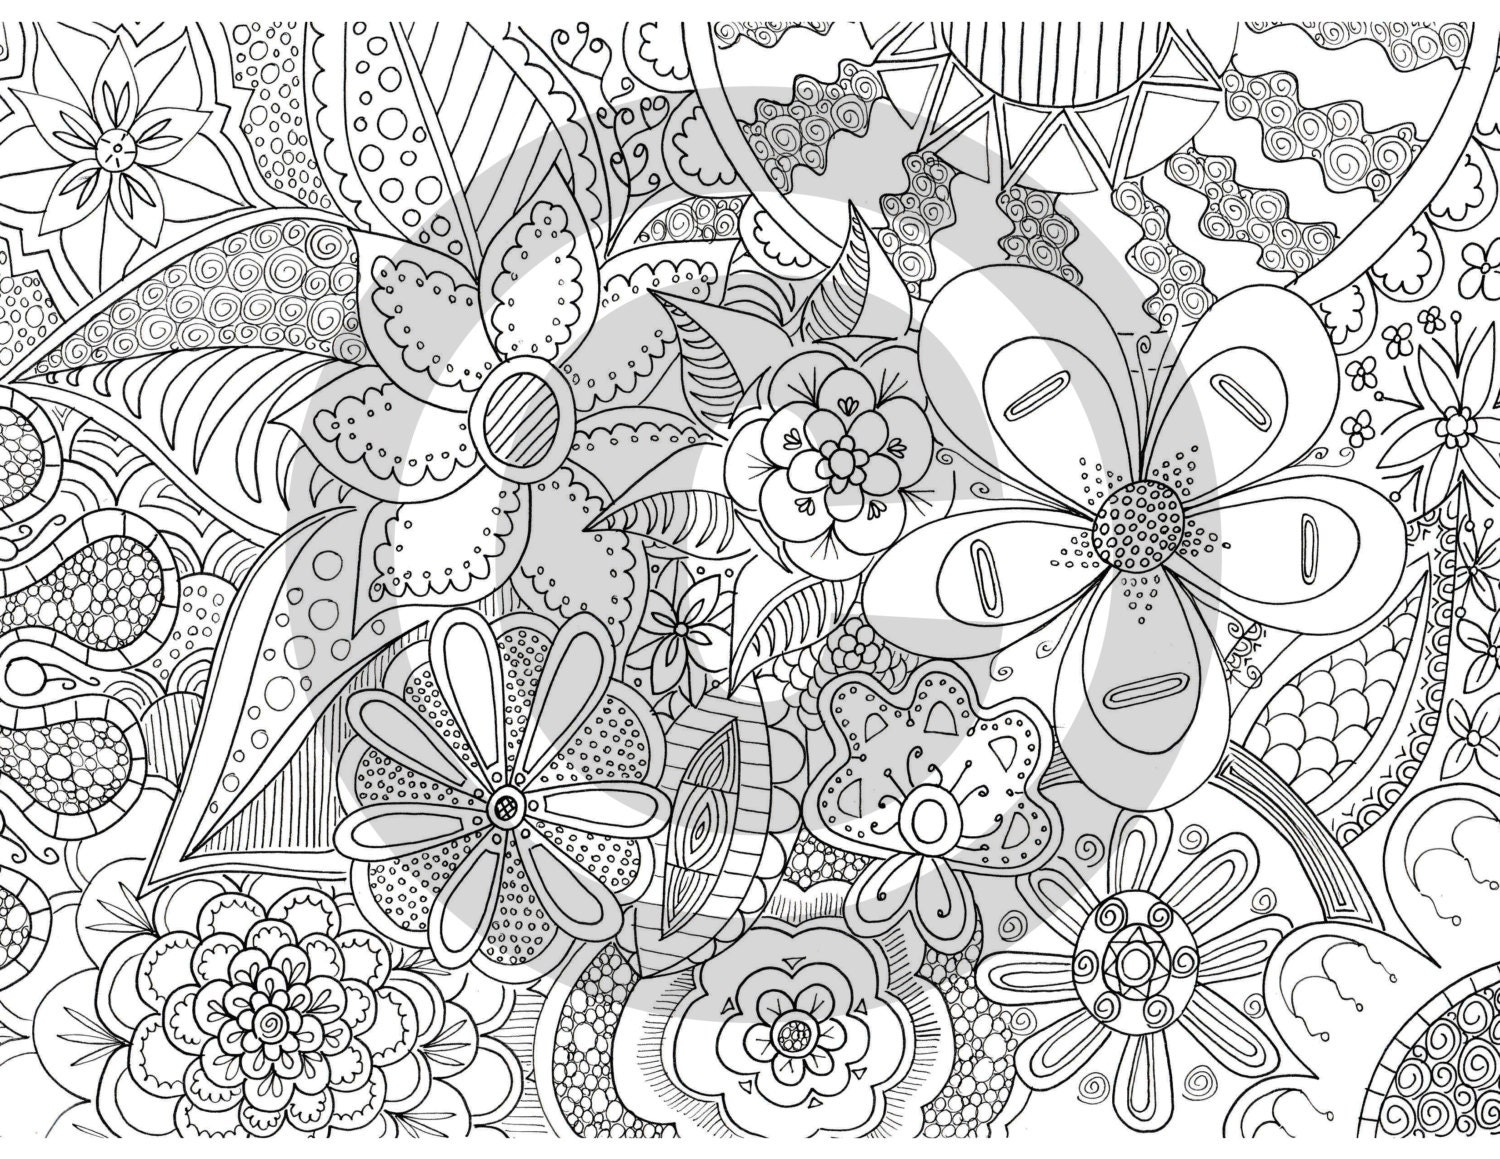 Coloring Pages For Zen : The Fleurs of Zen Coloring Page